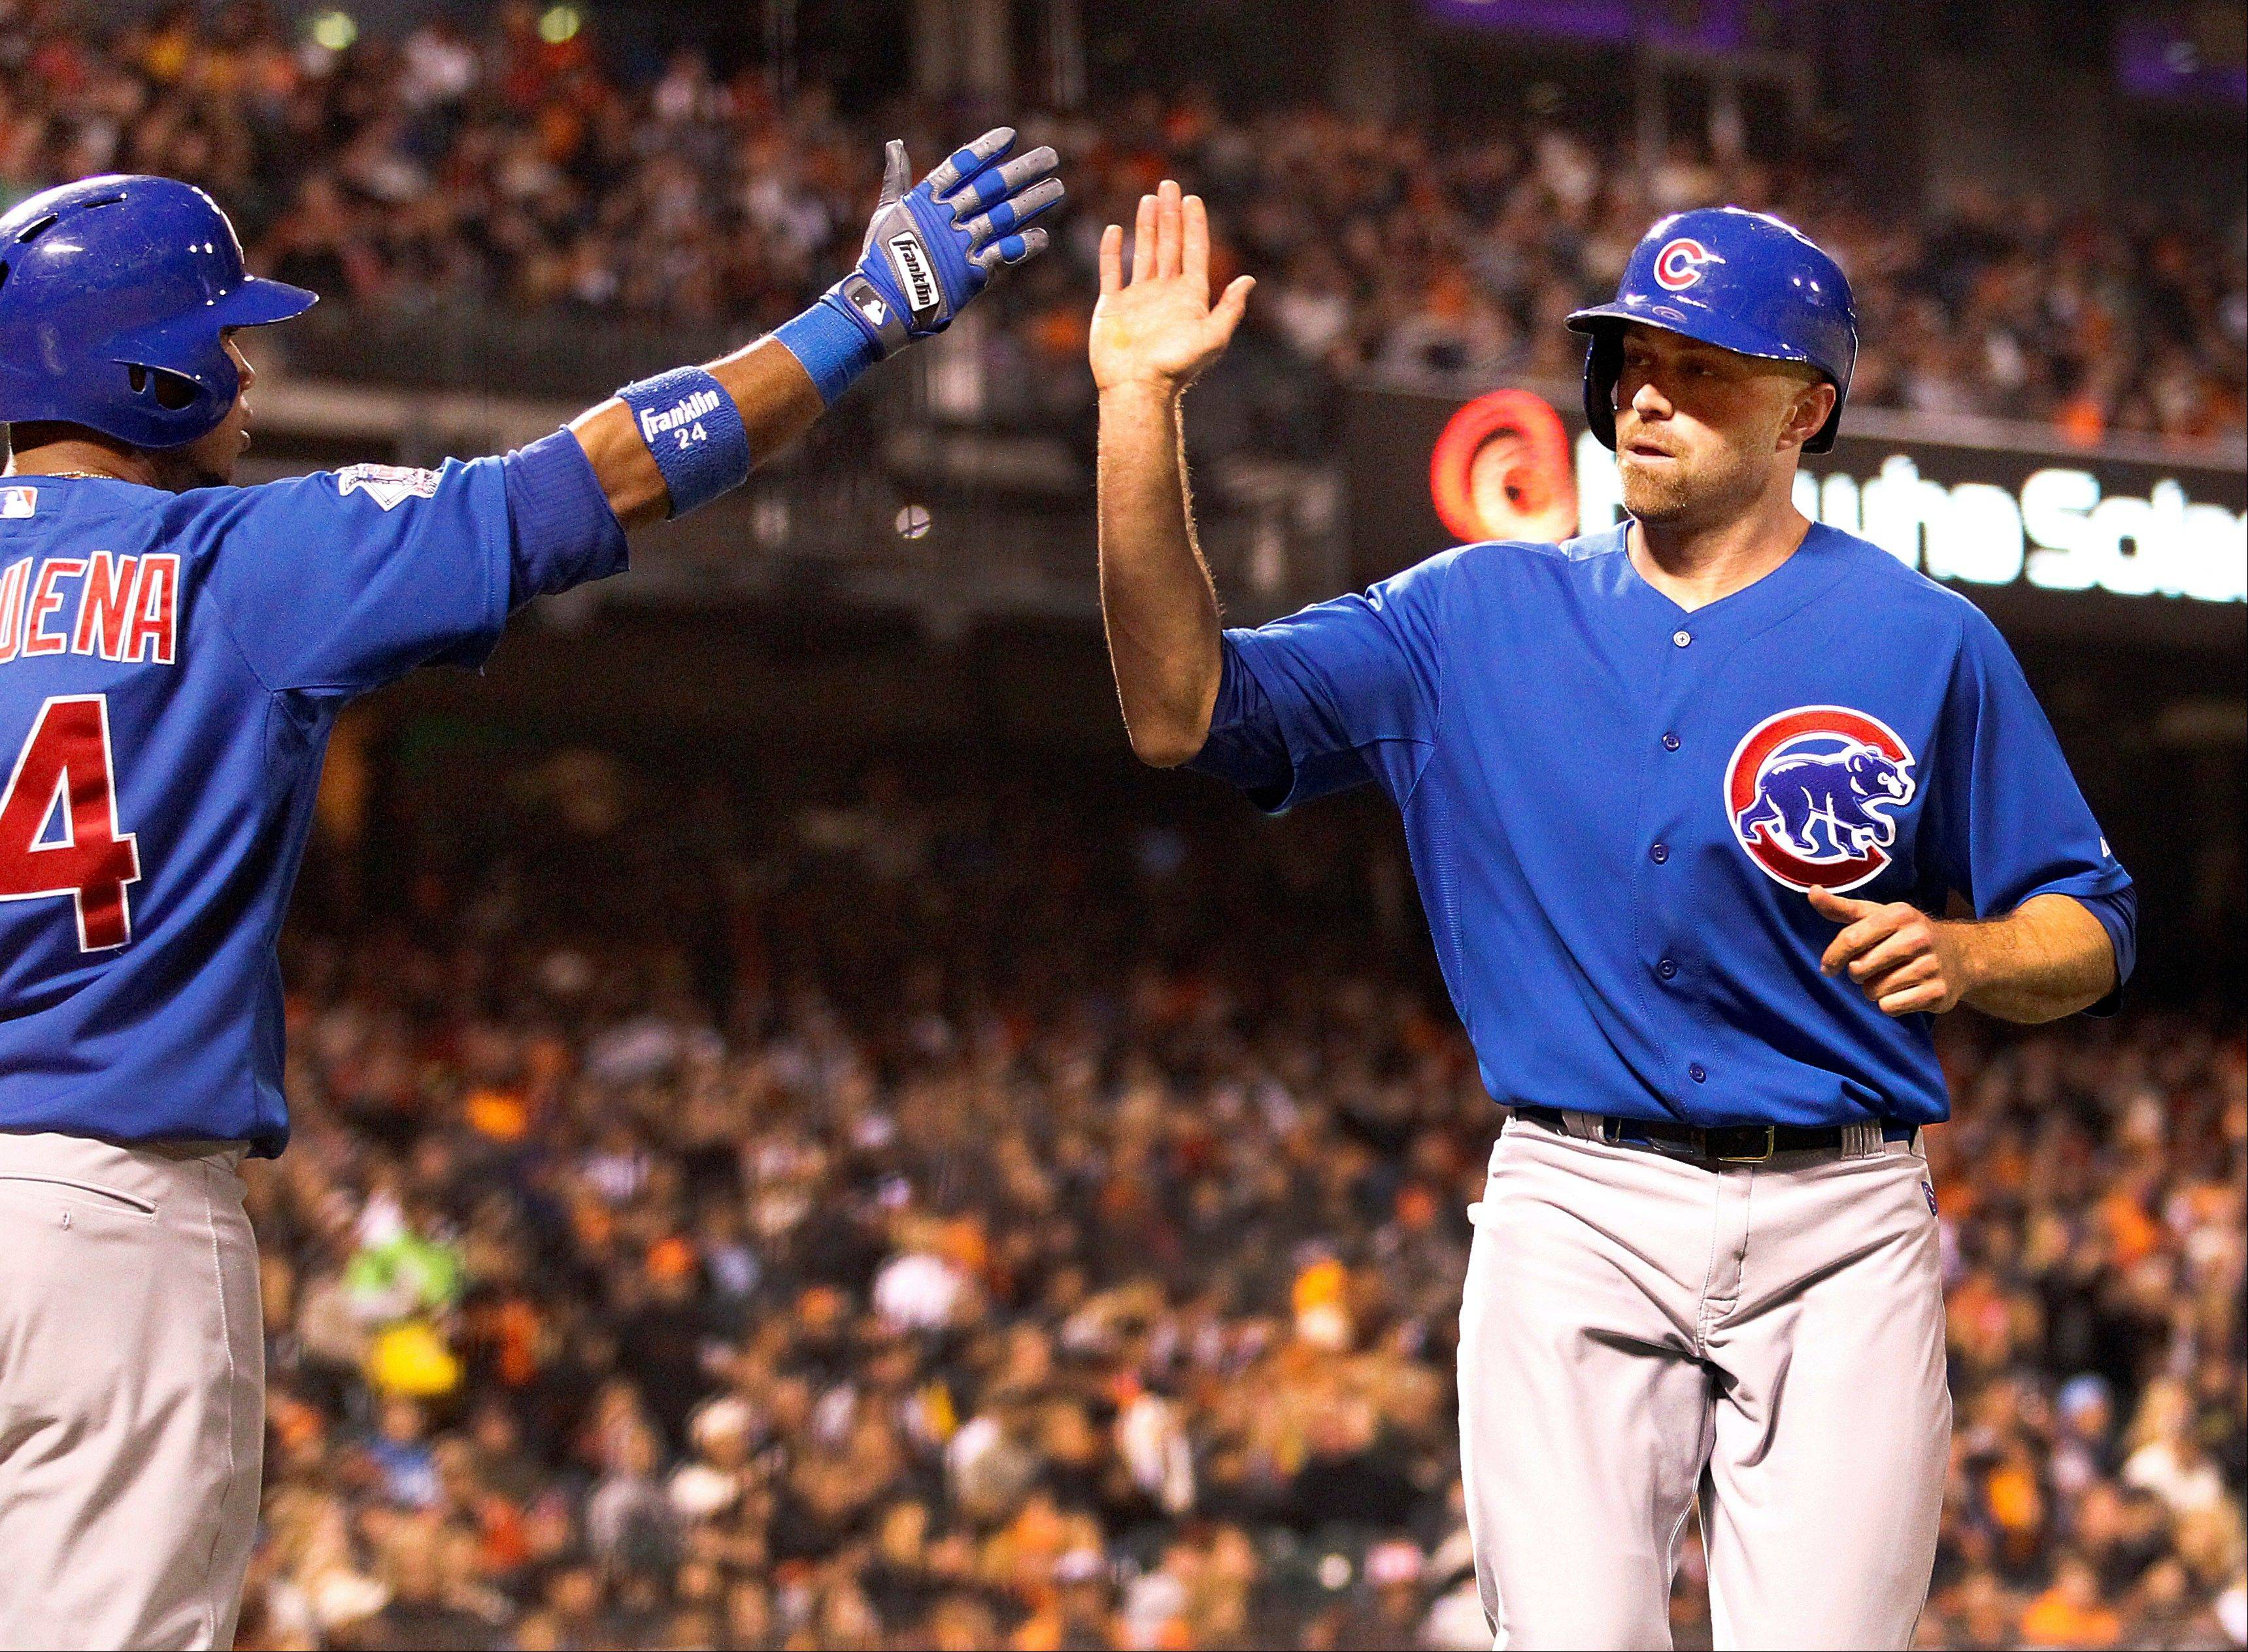 Cubs outfielder Nate Schierholtz, right, is congratulated by teammate Luis Valbuena, left, after scoring a run on a single Starlin Castro against the San Francisco Giants in Friday's sixth inning.